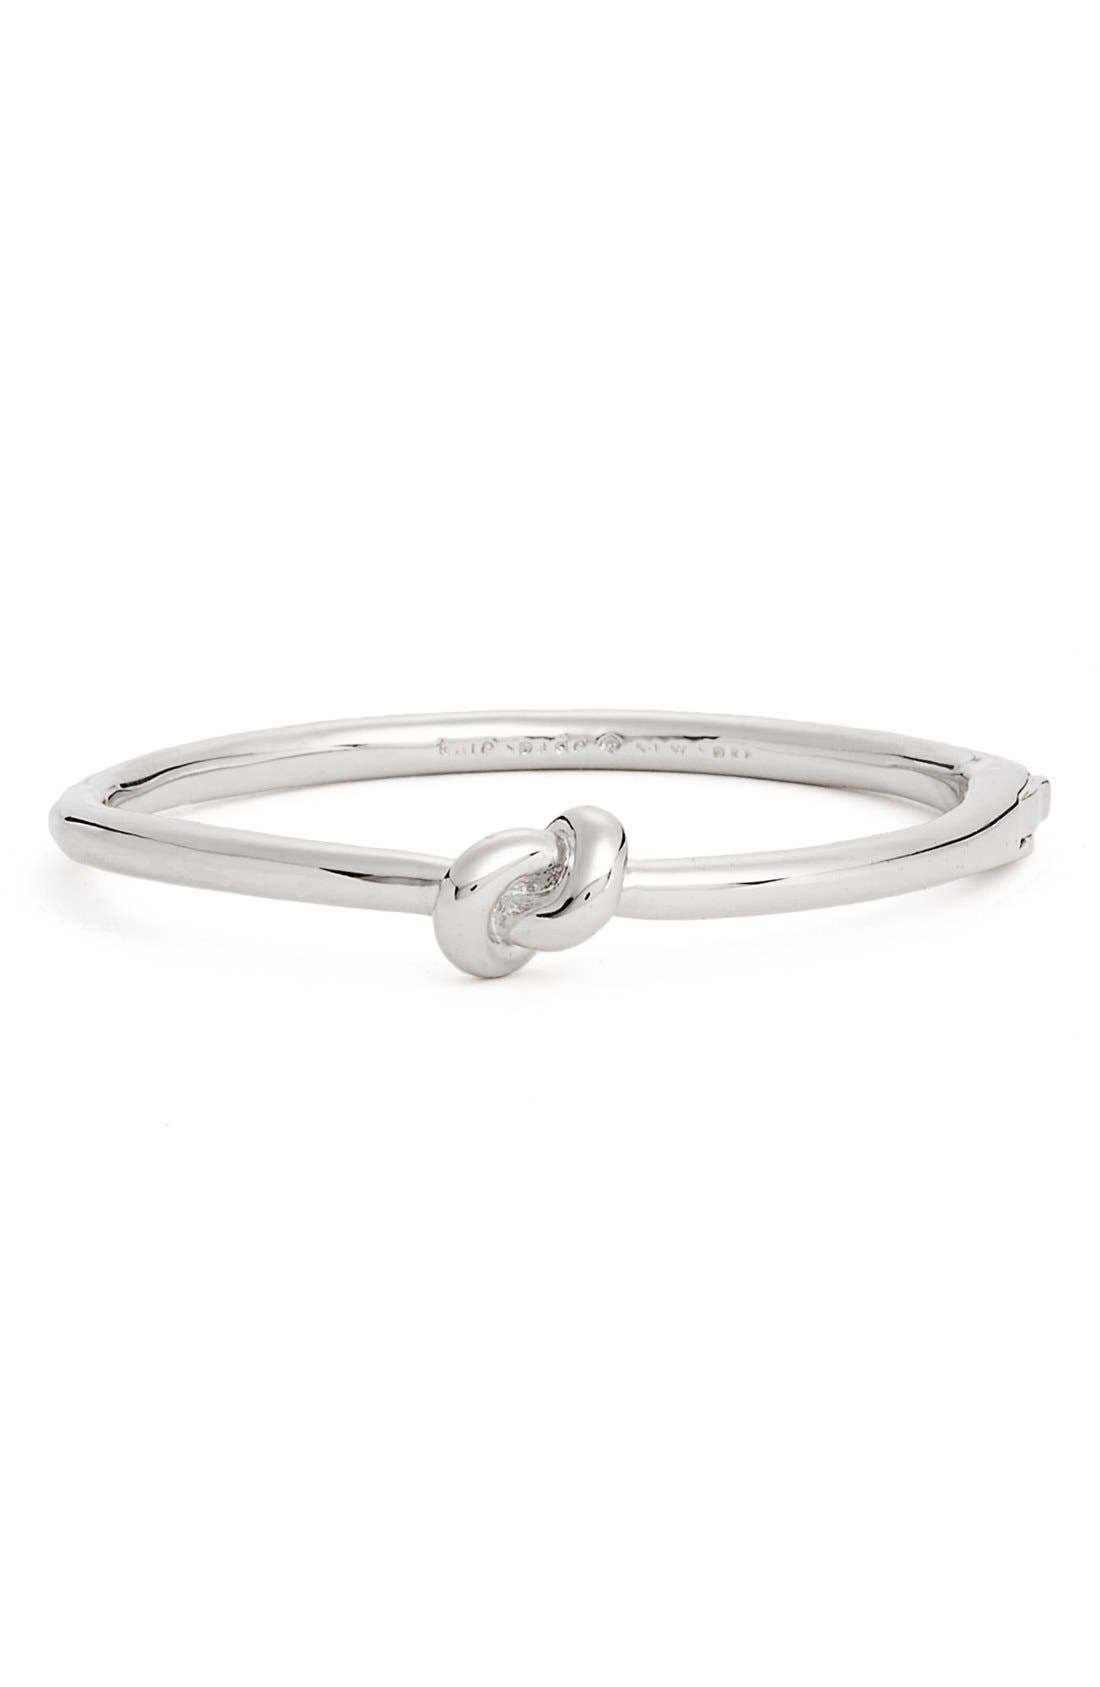 KATE SPADE NEW YORK sailors knot bangle